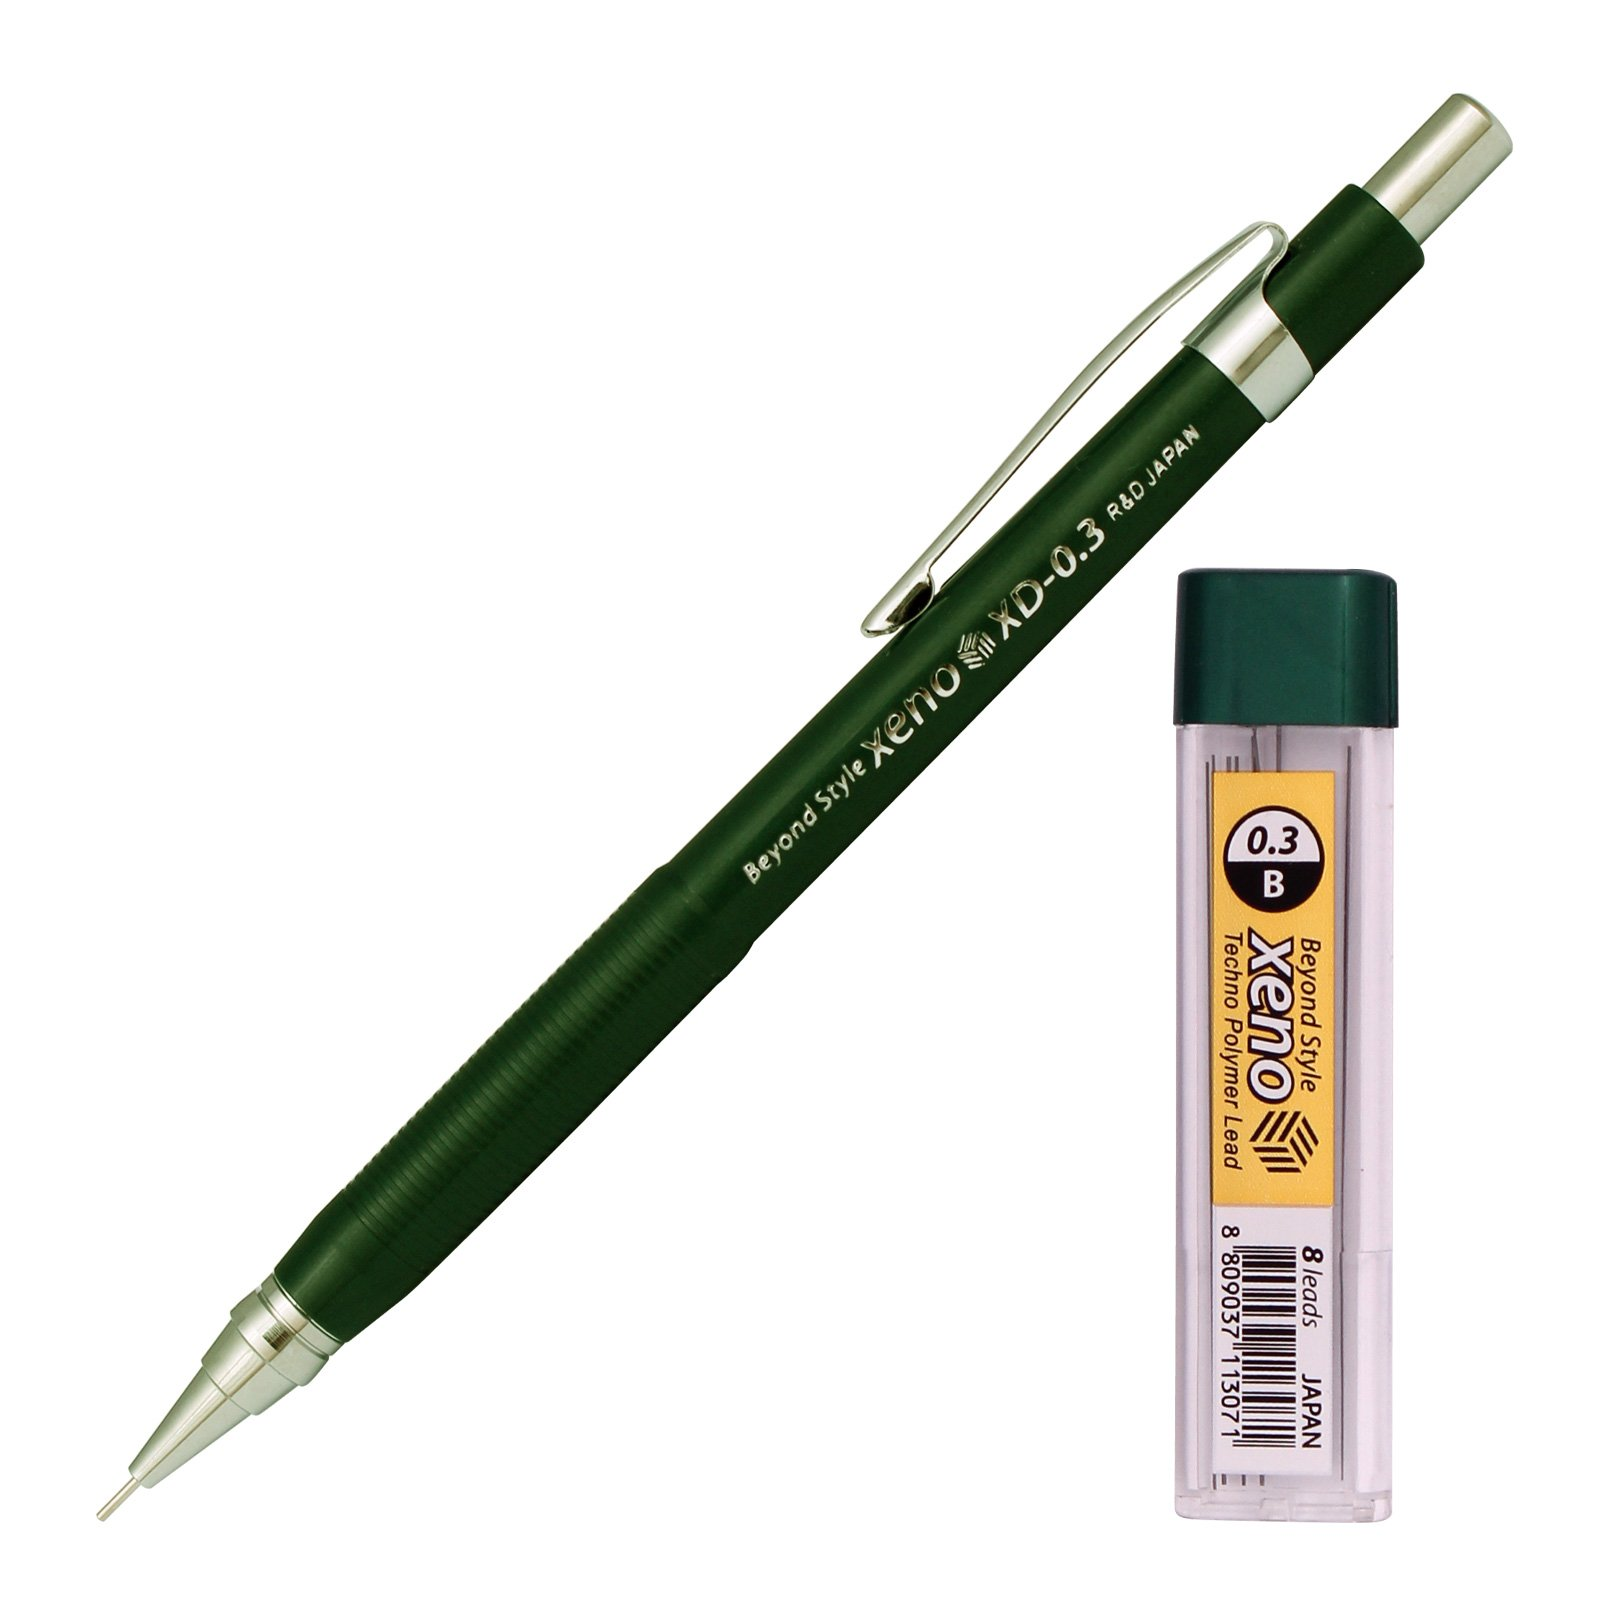 Xeno Beyond Style-Xd Mechanical Pencil for Drafting Sharp Pencils 0.3 mm /0.5 mm /0.7 mm /0.9 mm/ 1.3 mm (Pack of 5 Pencils) + Lead by Xeno (Image #7)